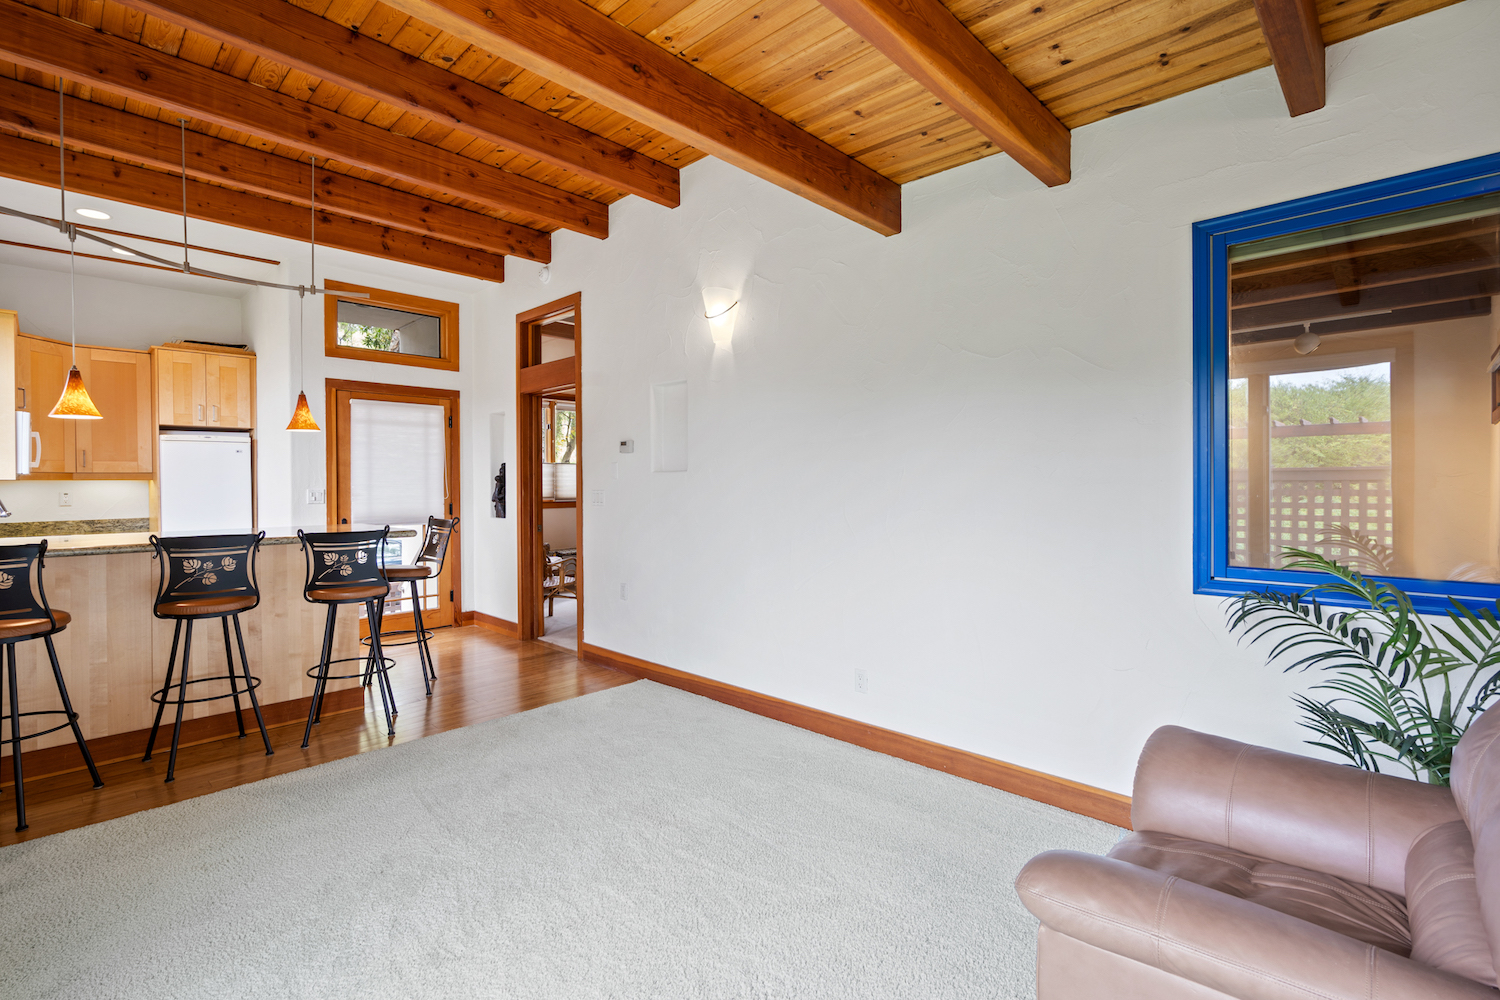 127 bethany curve - living space